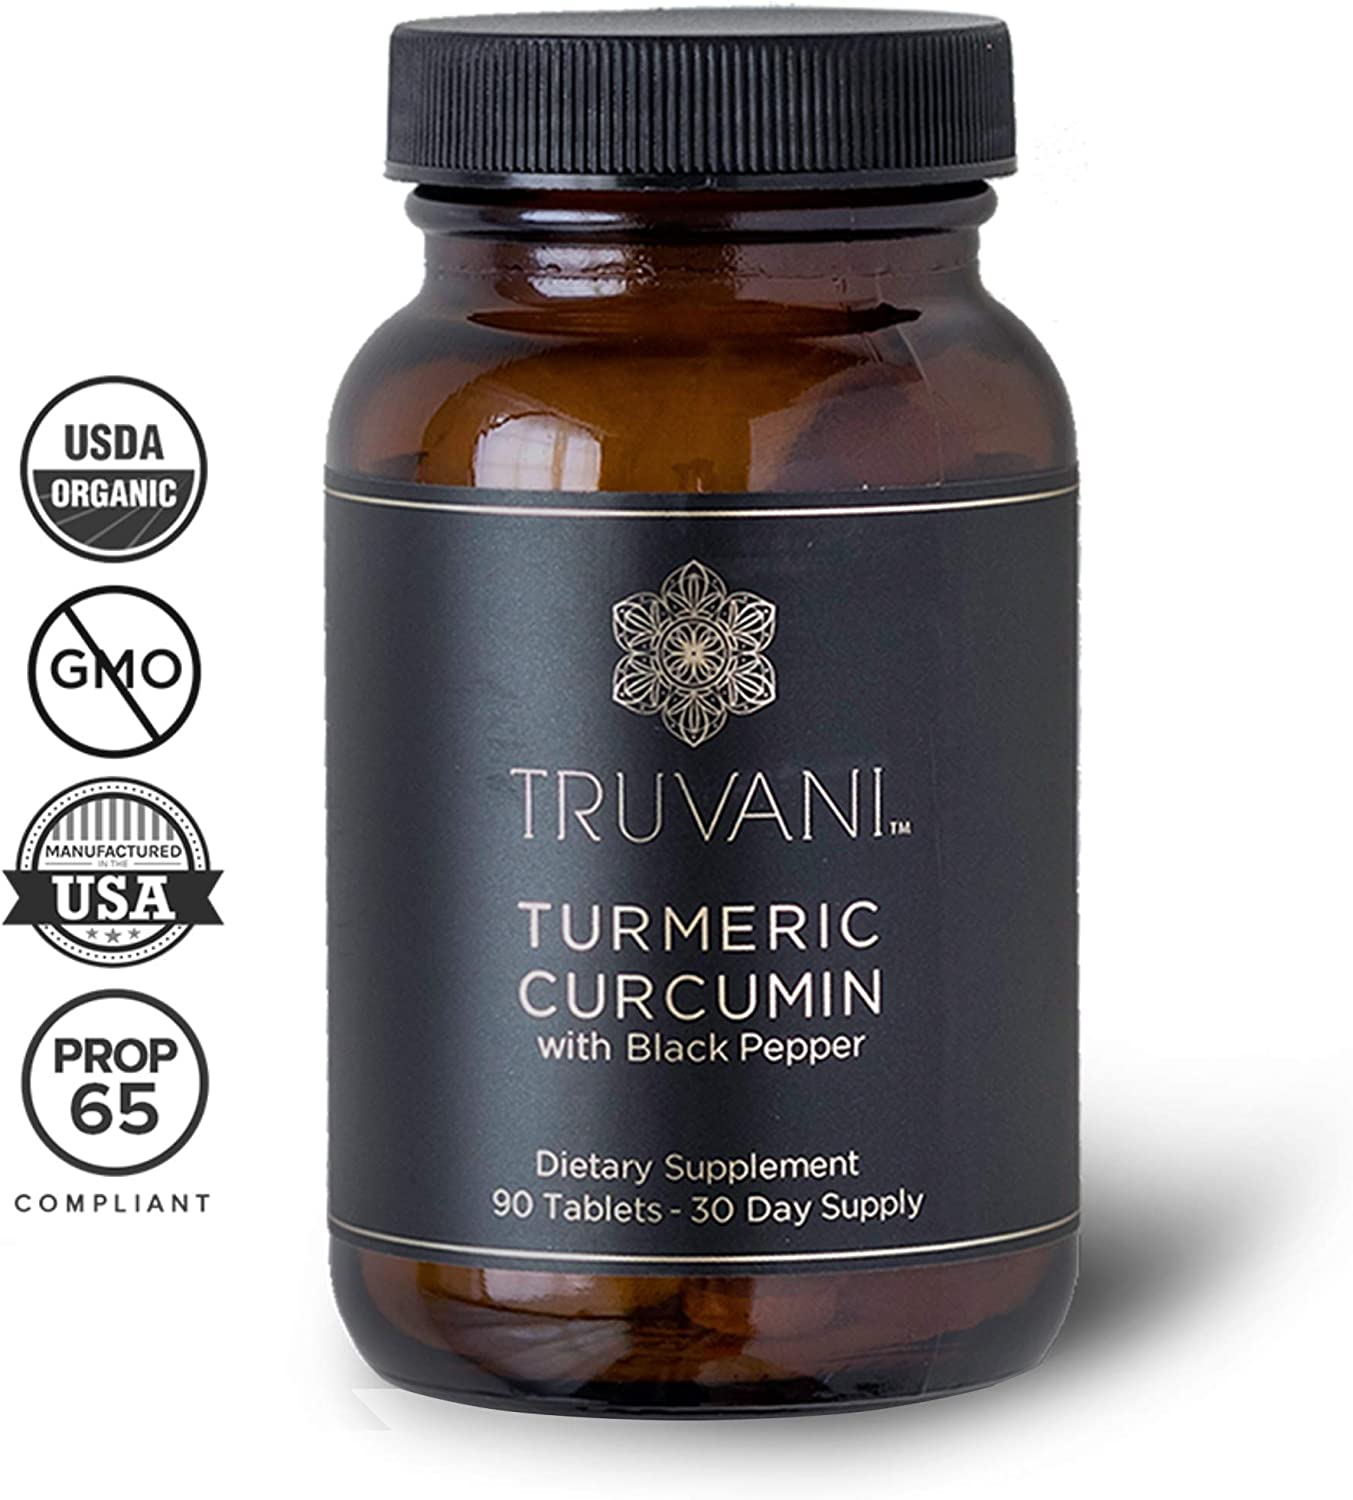 TRUVANI – Organic Turmeric Curcumin Supplement Turmeric Root Powder – with Black Pepper for Improved Absorption Anti-inflammatory, Joint Support Stress Relief Supplement – 90 Vegan Tablets